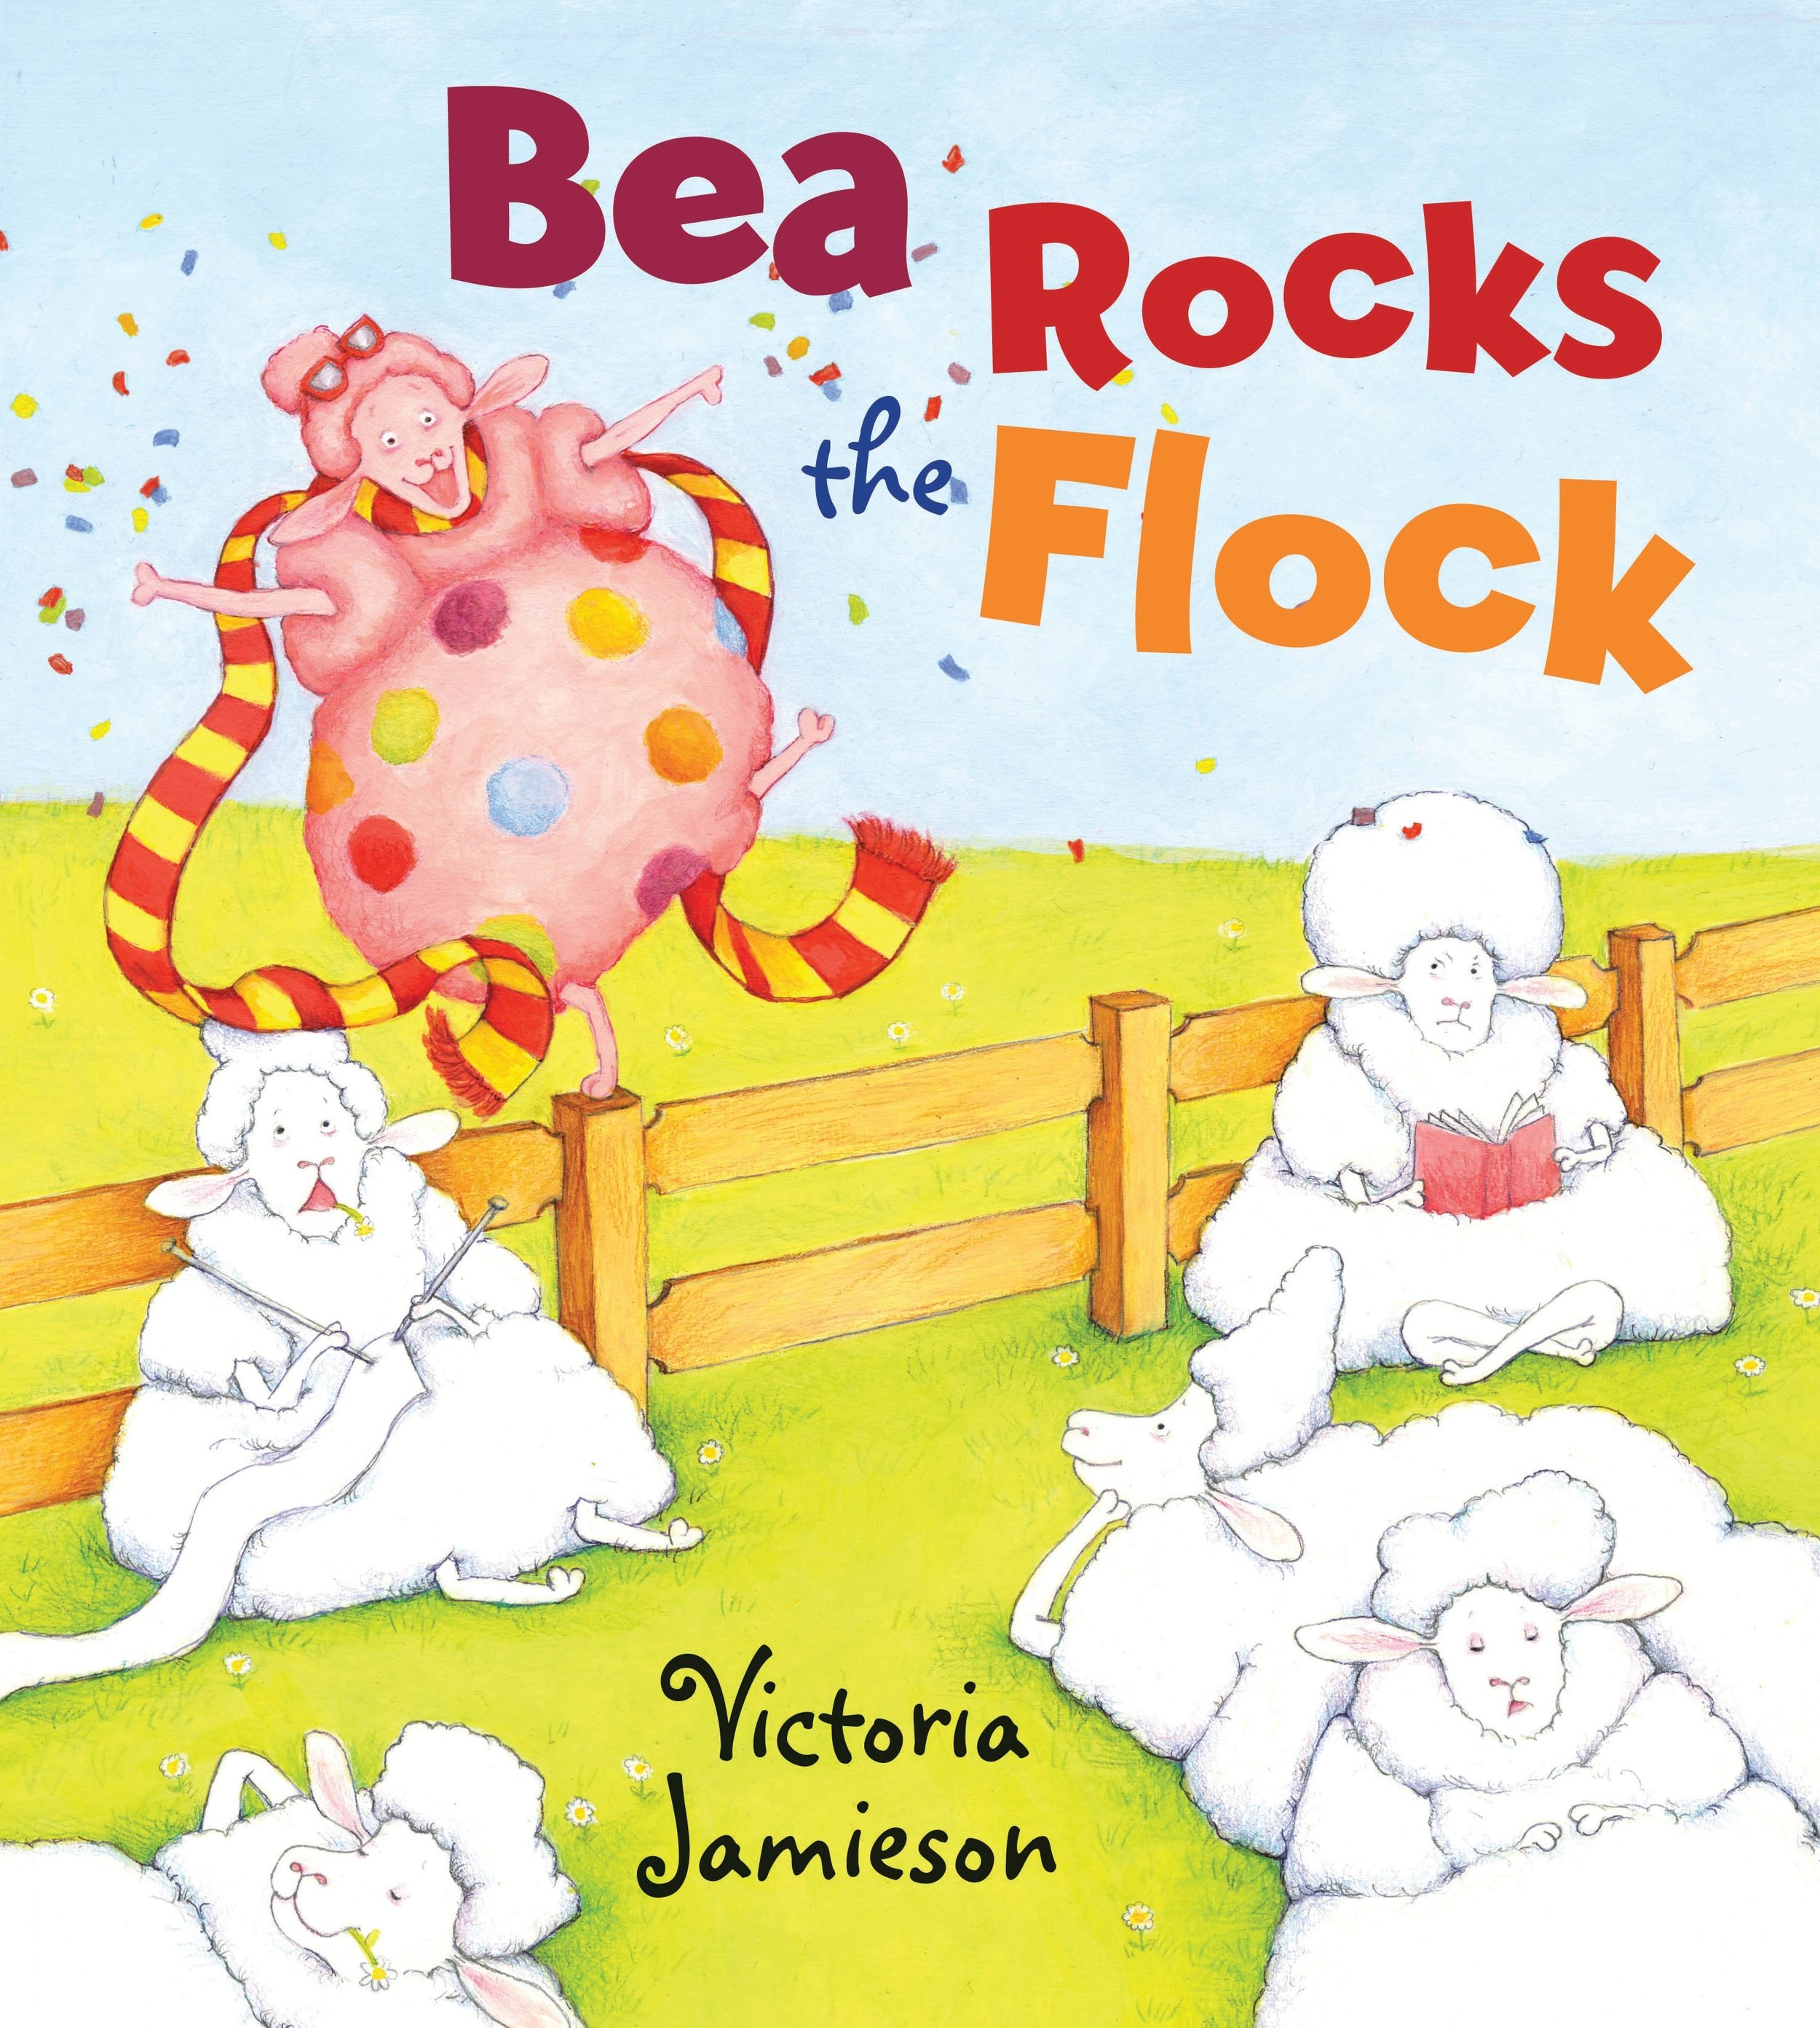 Jamieson, Victoria 2009_05 - BEA ROCKS THE FLOCK - PB.jpg